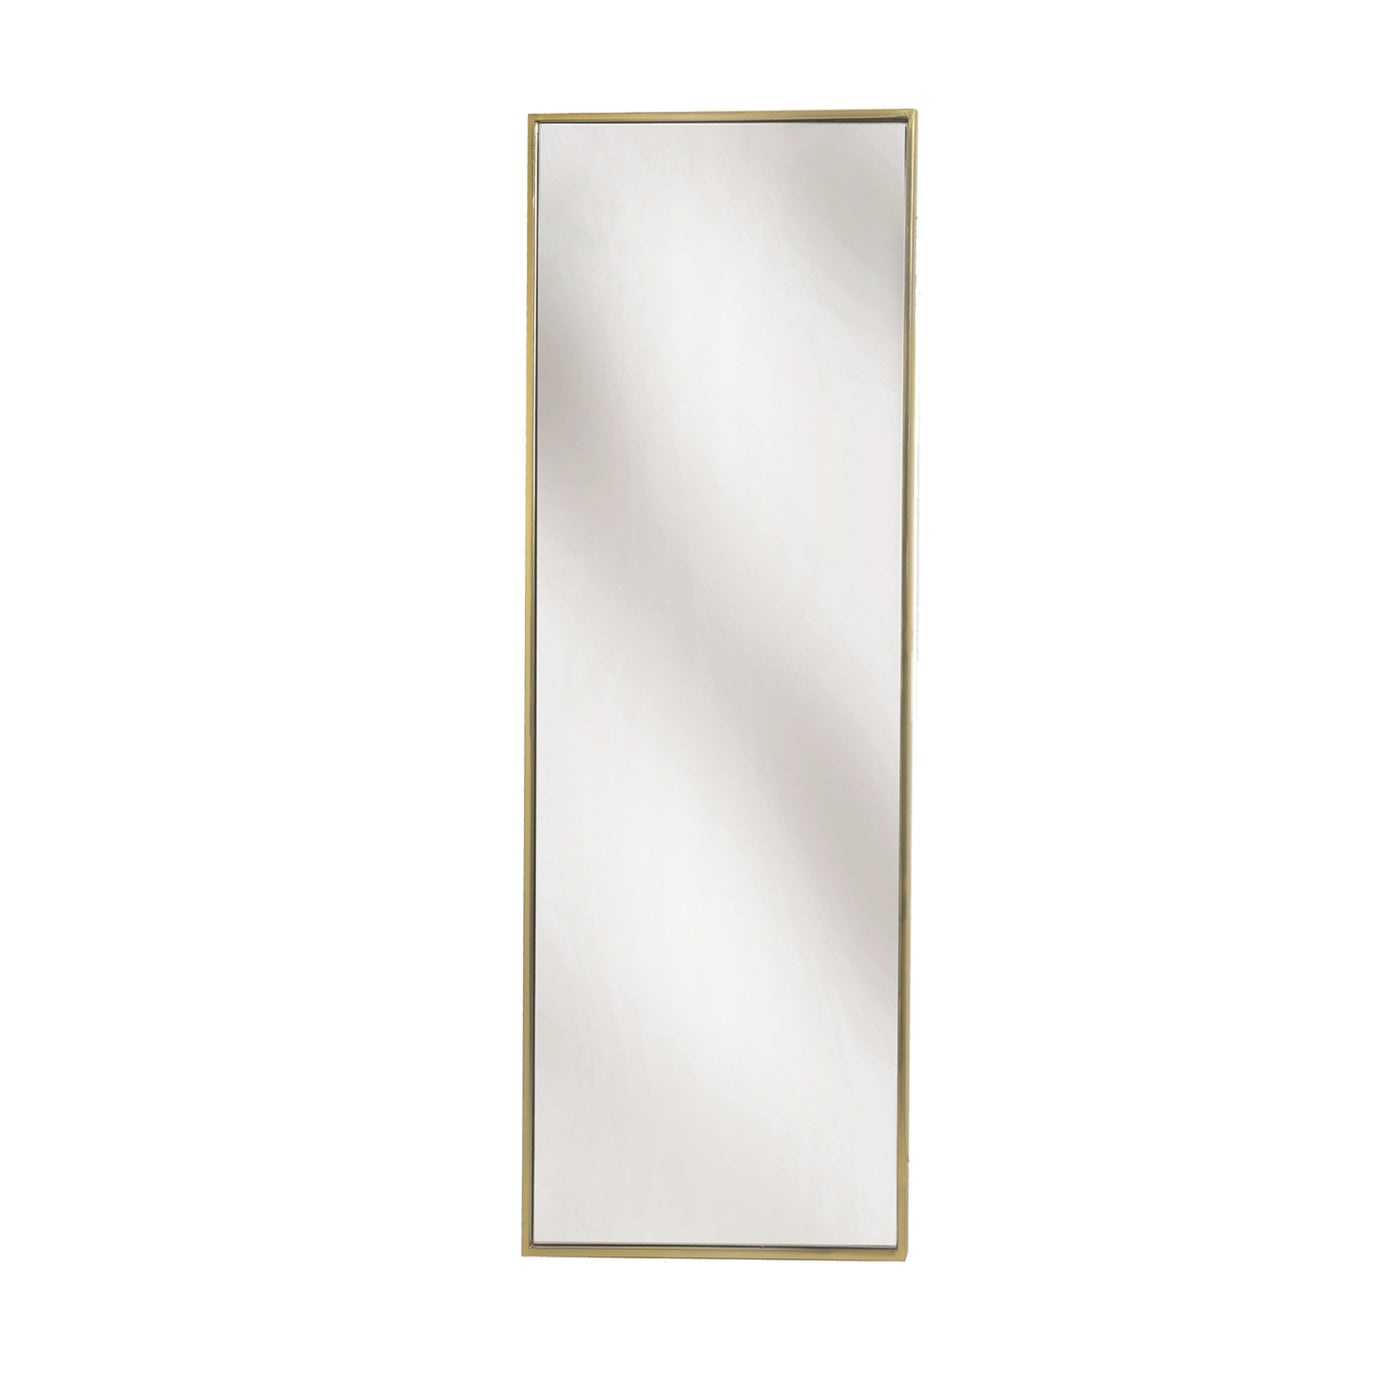 Simple Wall Mirror - Brass